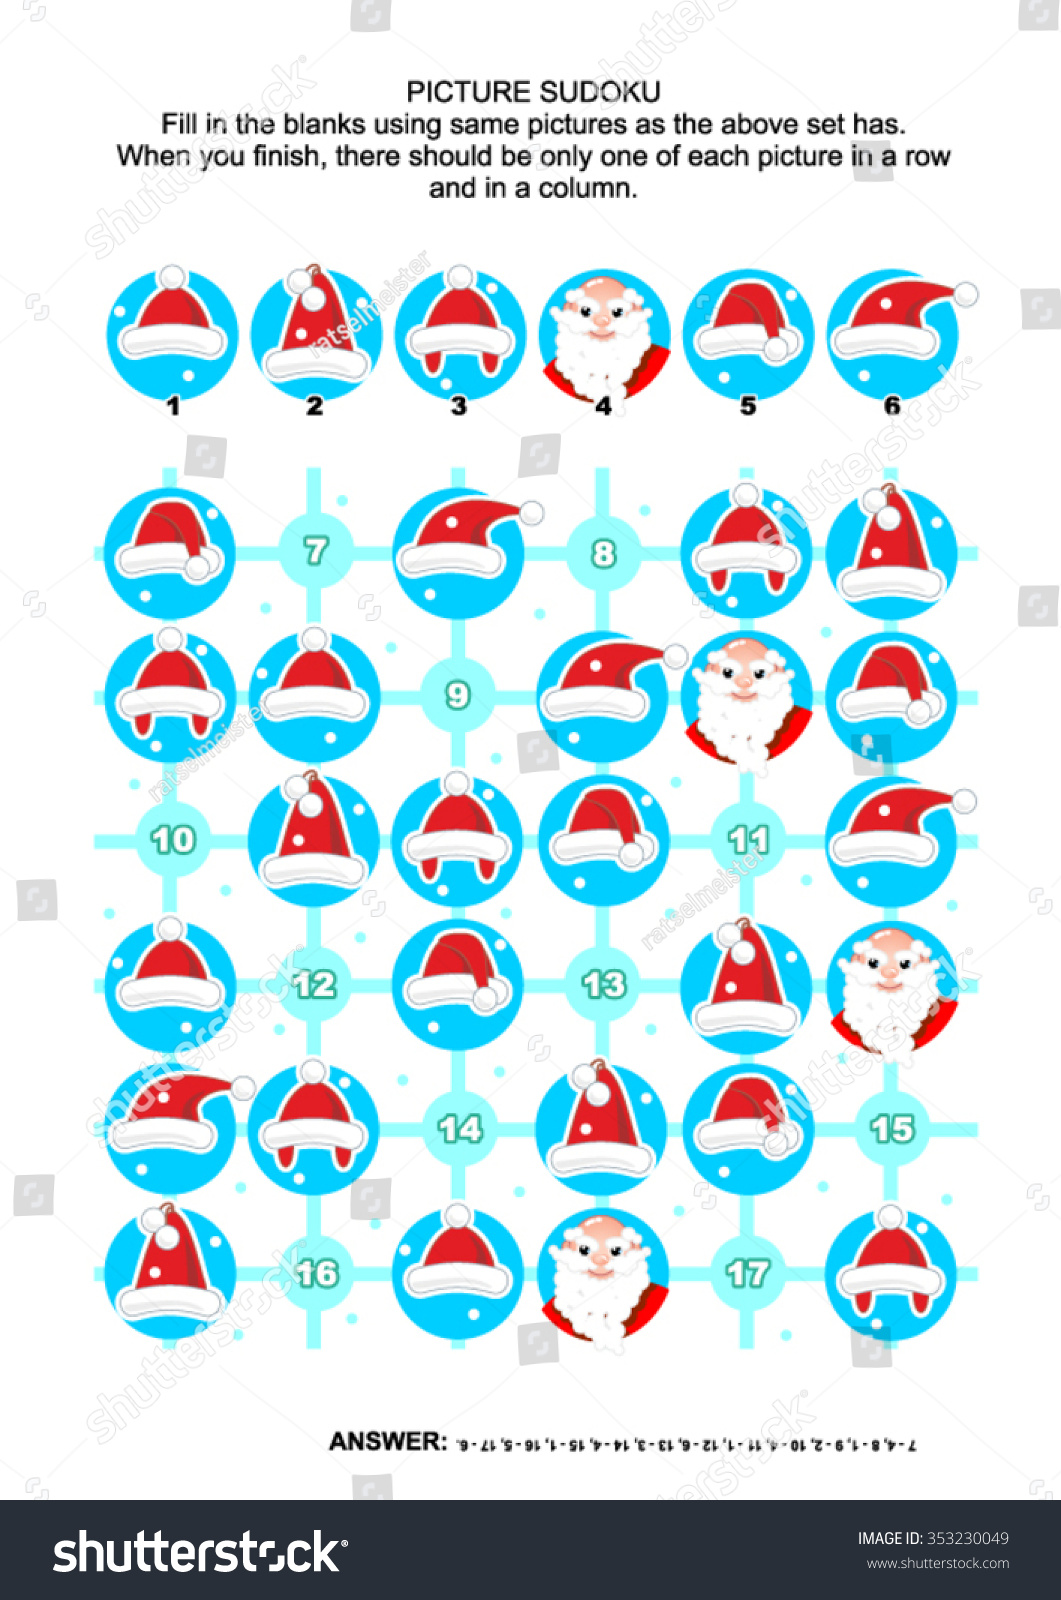 Christmas New Year Themed Picture Sudoku Stock Vector